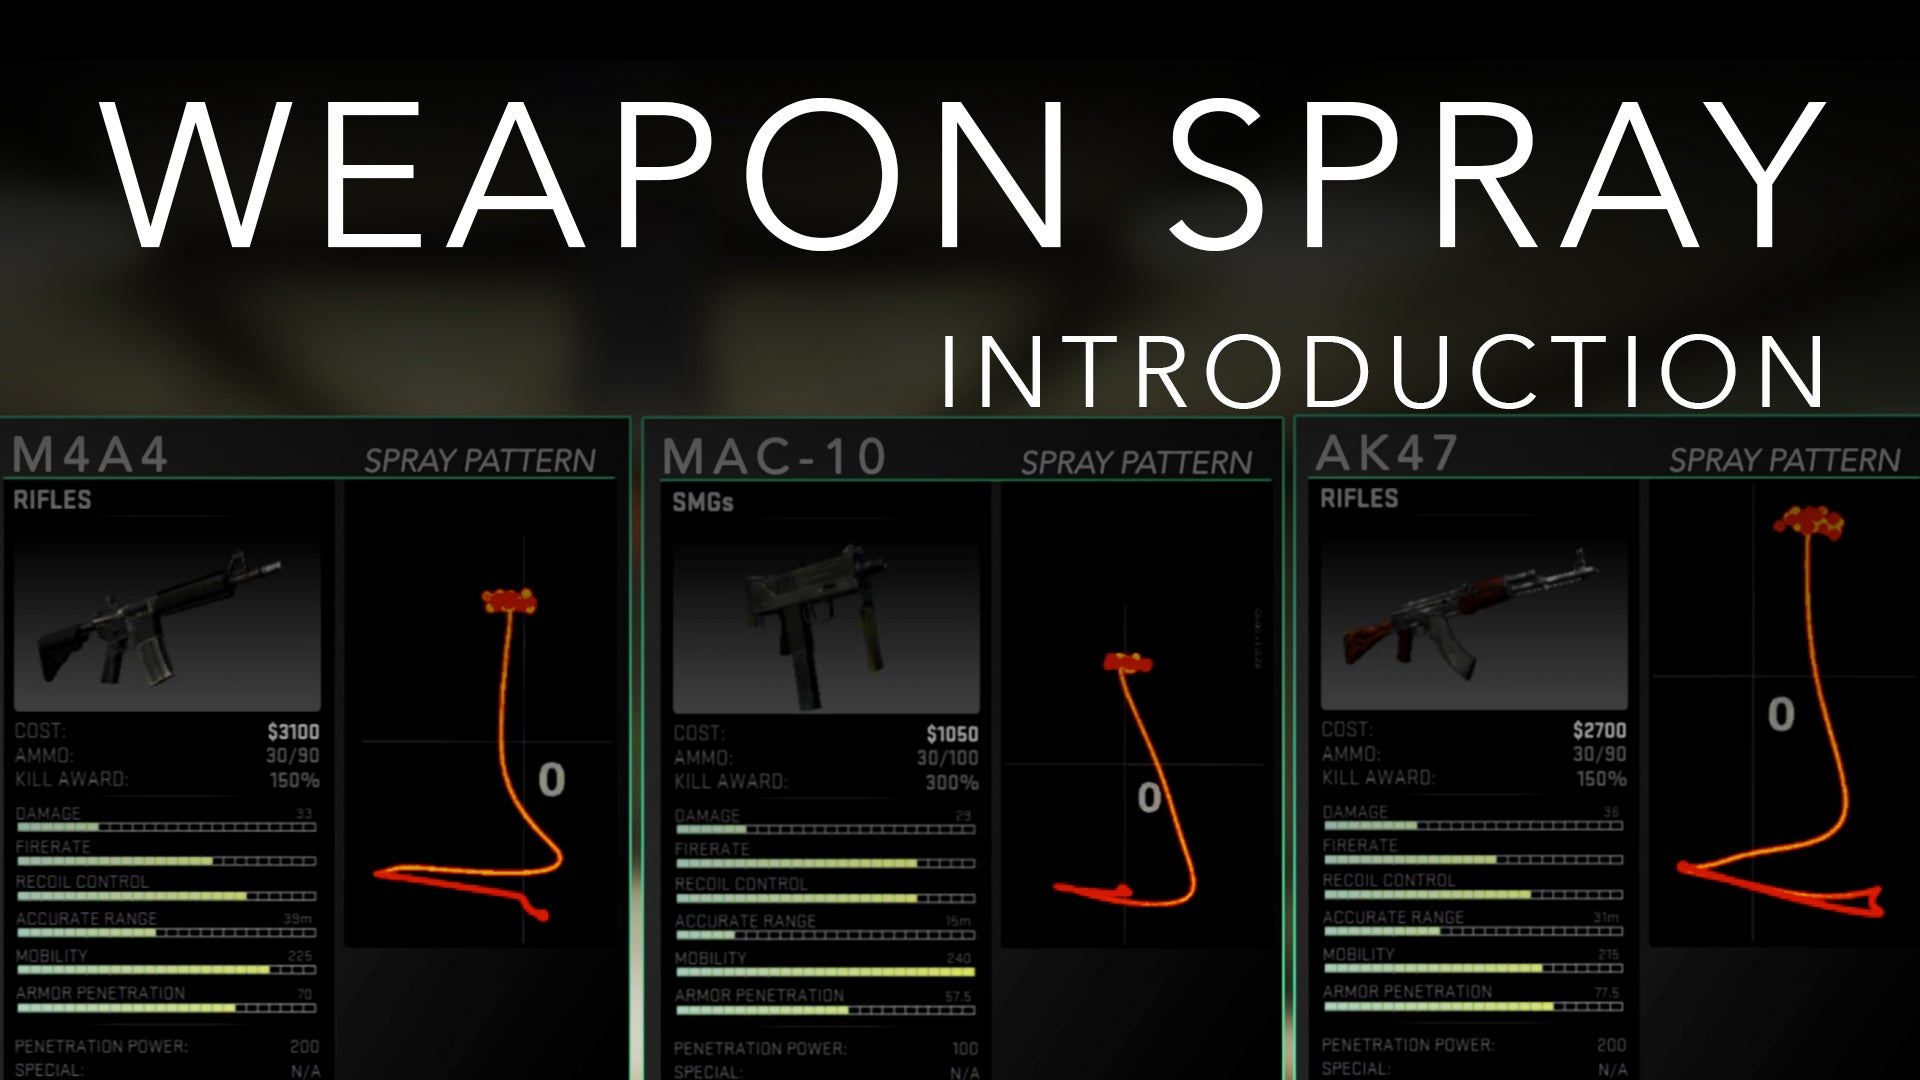 What is Weapon Spray?